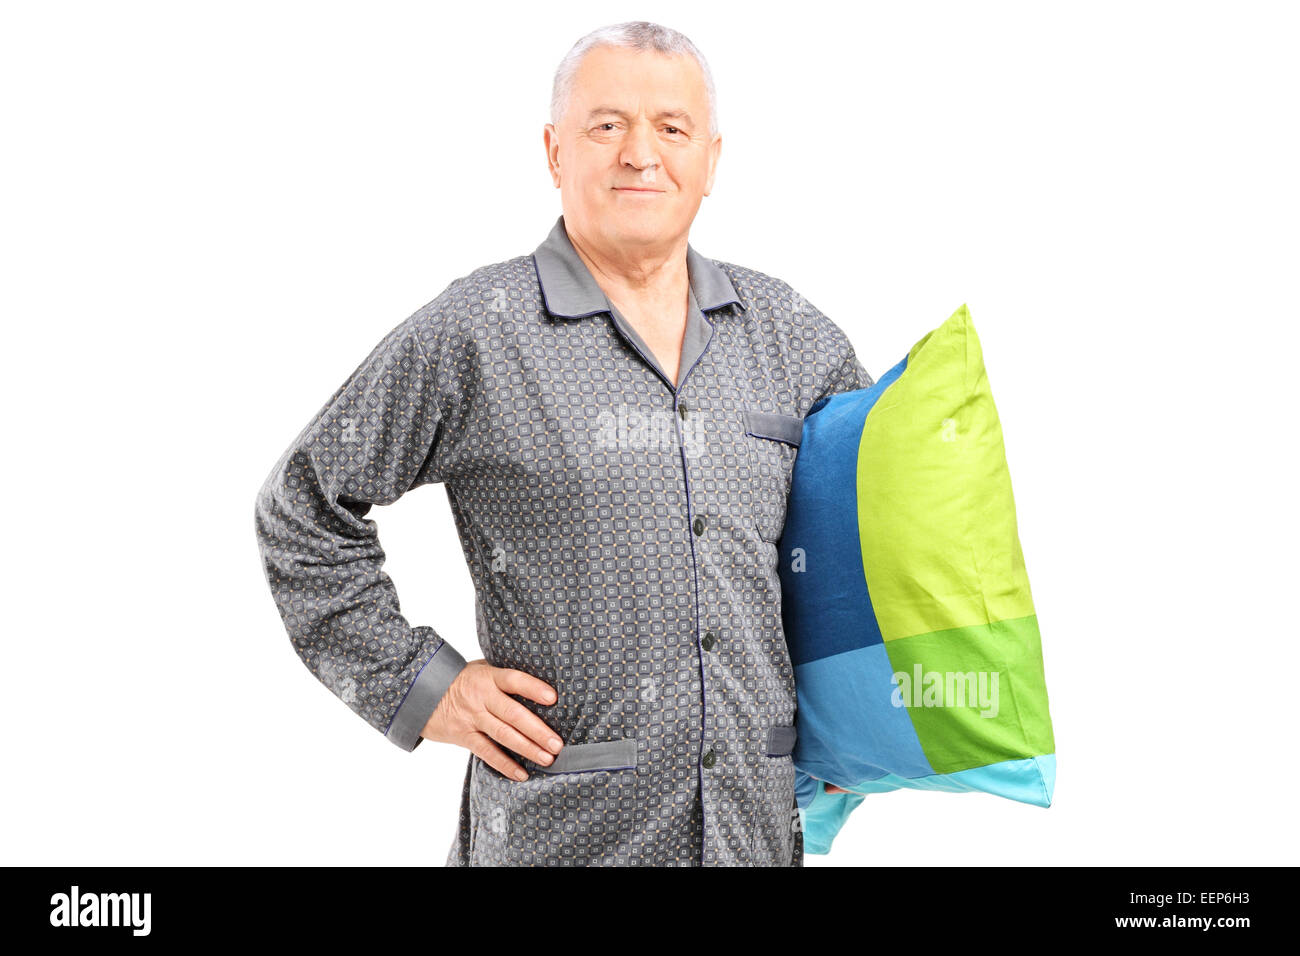 Senior in nightwear holding a pillow isolated on white background - Stock Image